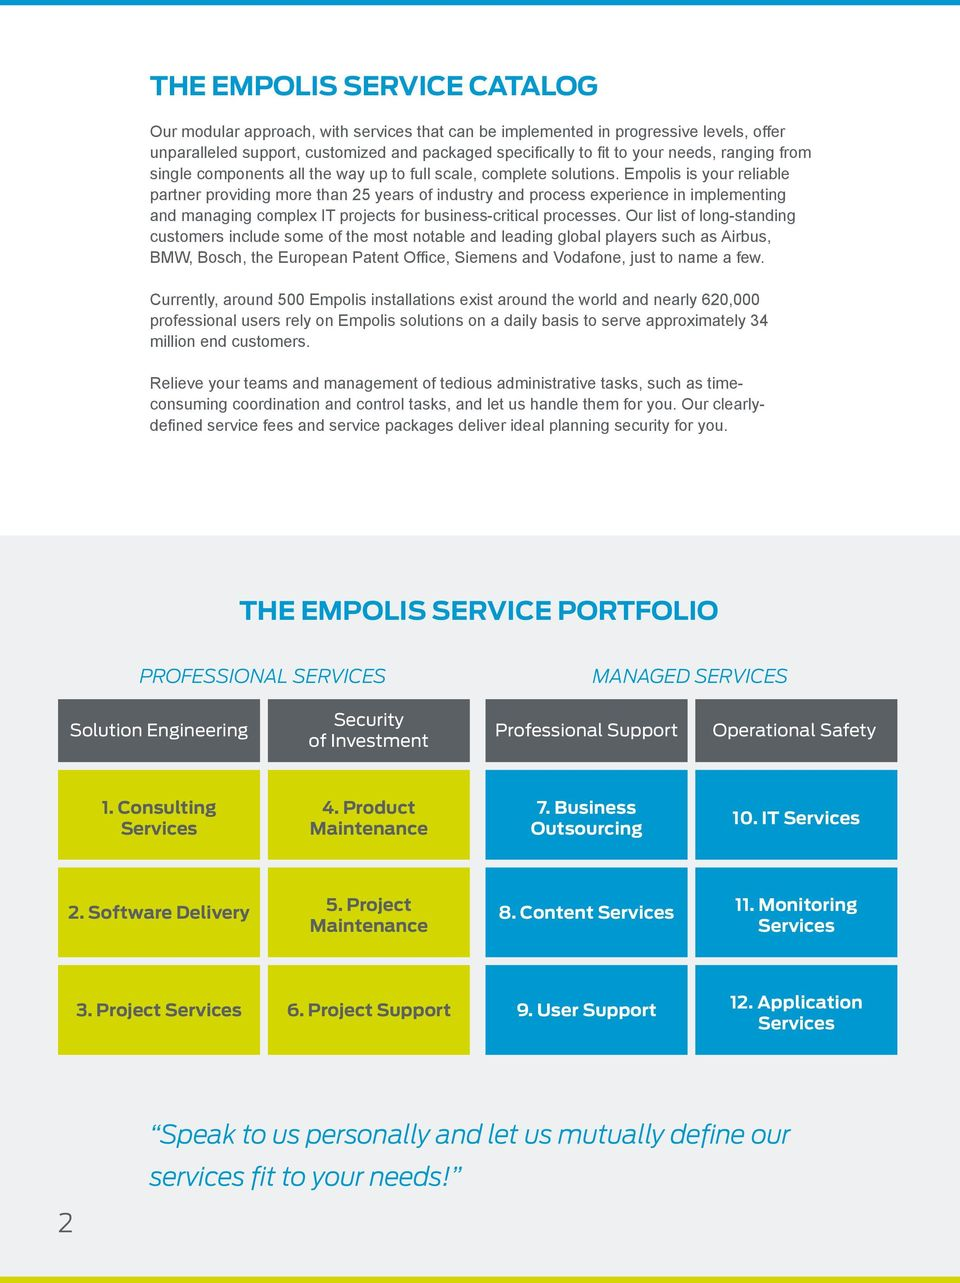 Empolis is your reliable partner providing more than 25 years of industry and process experience in implementing and managing complex IT projects for business-critical processes.